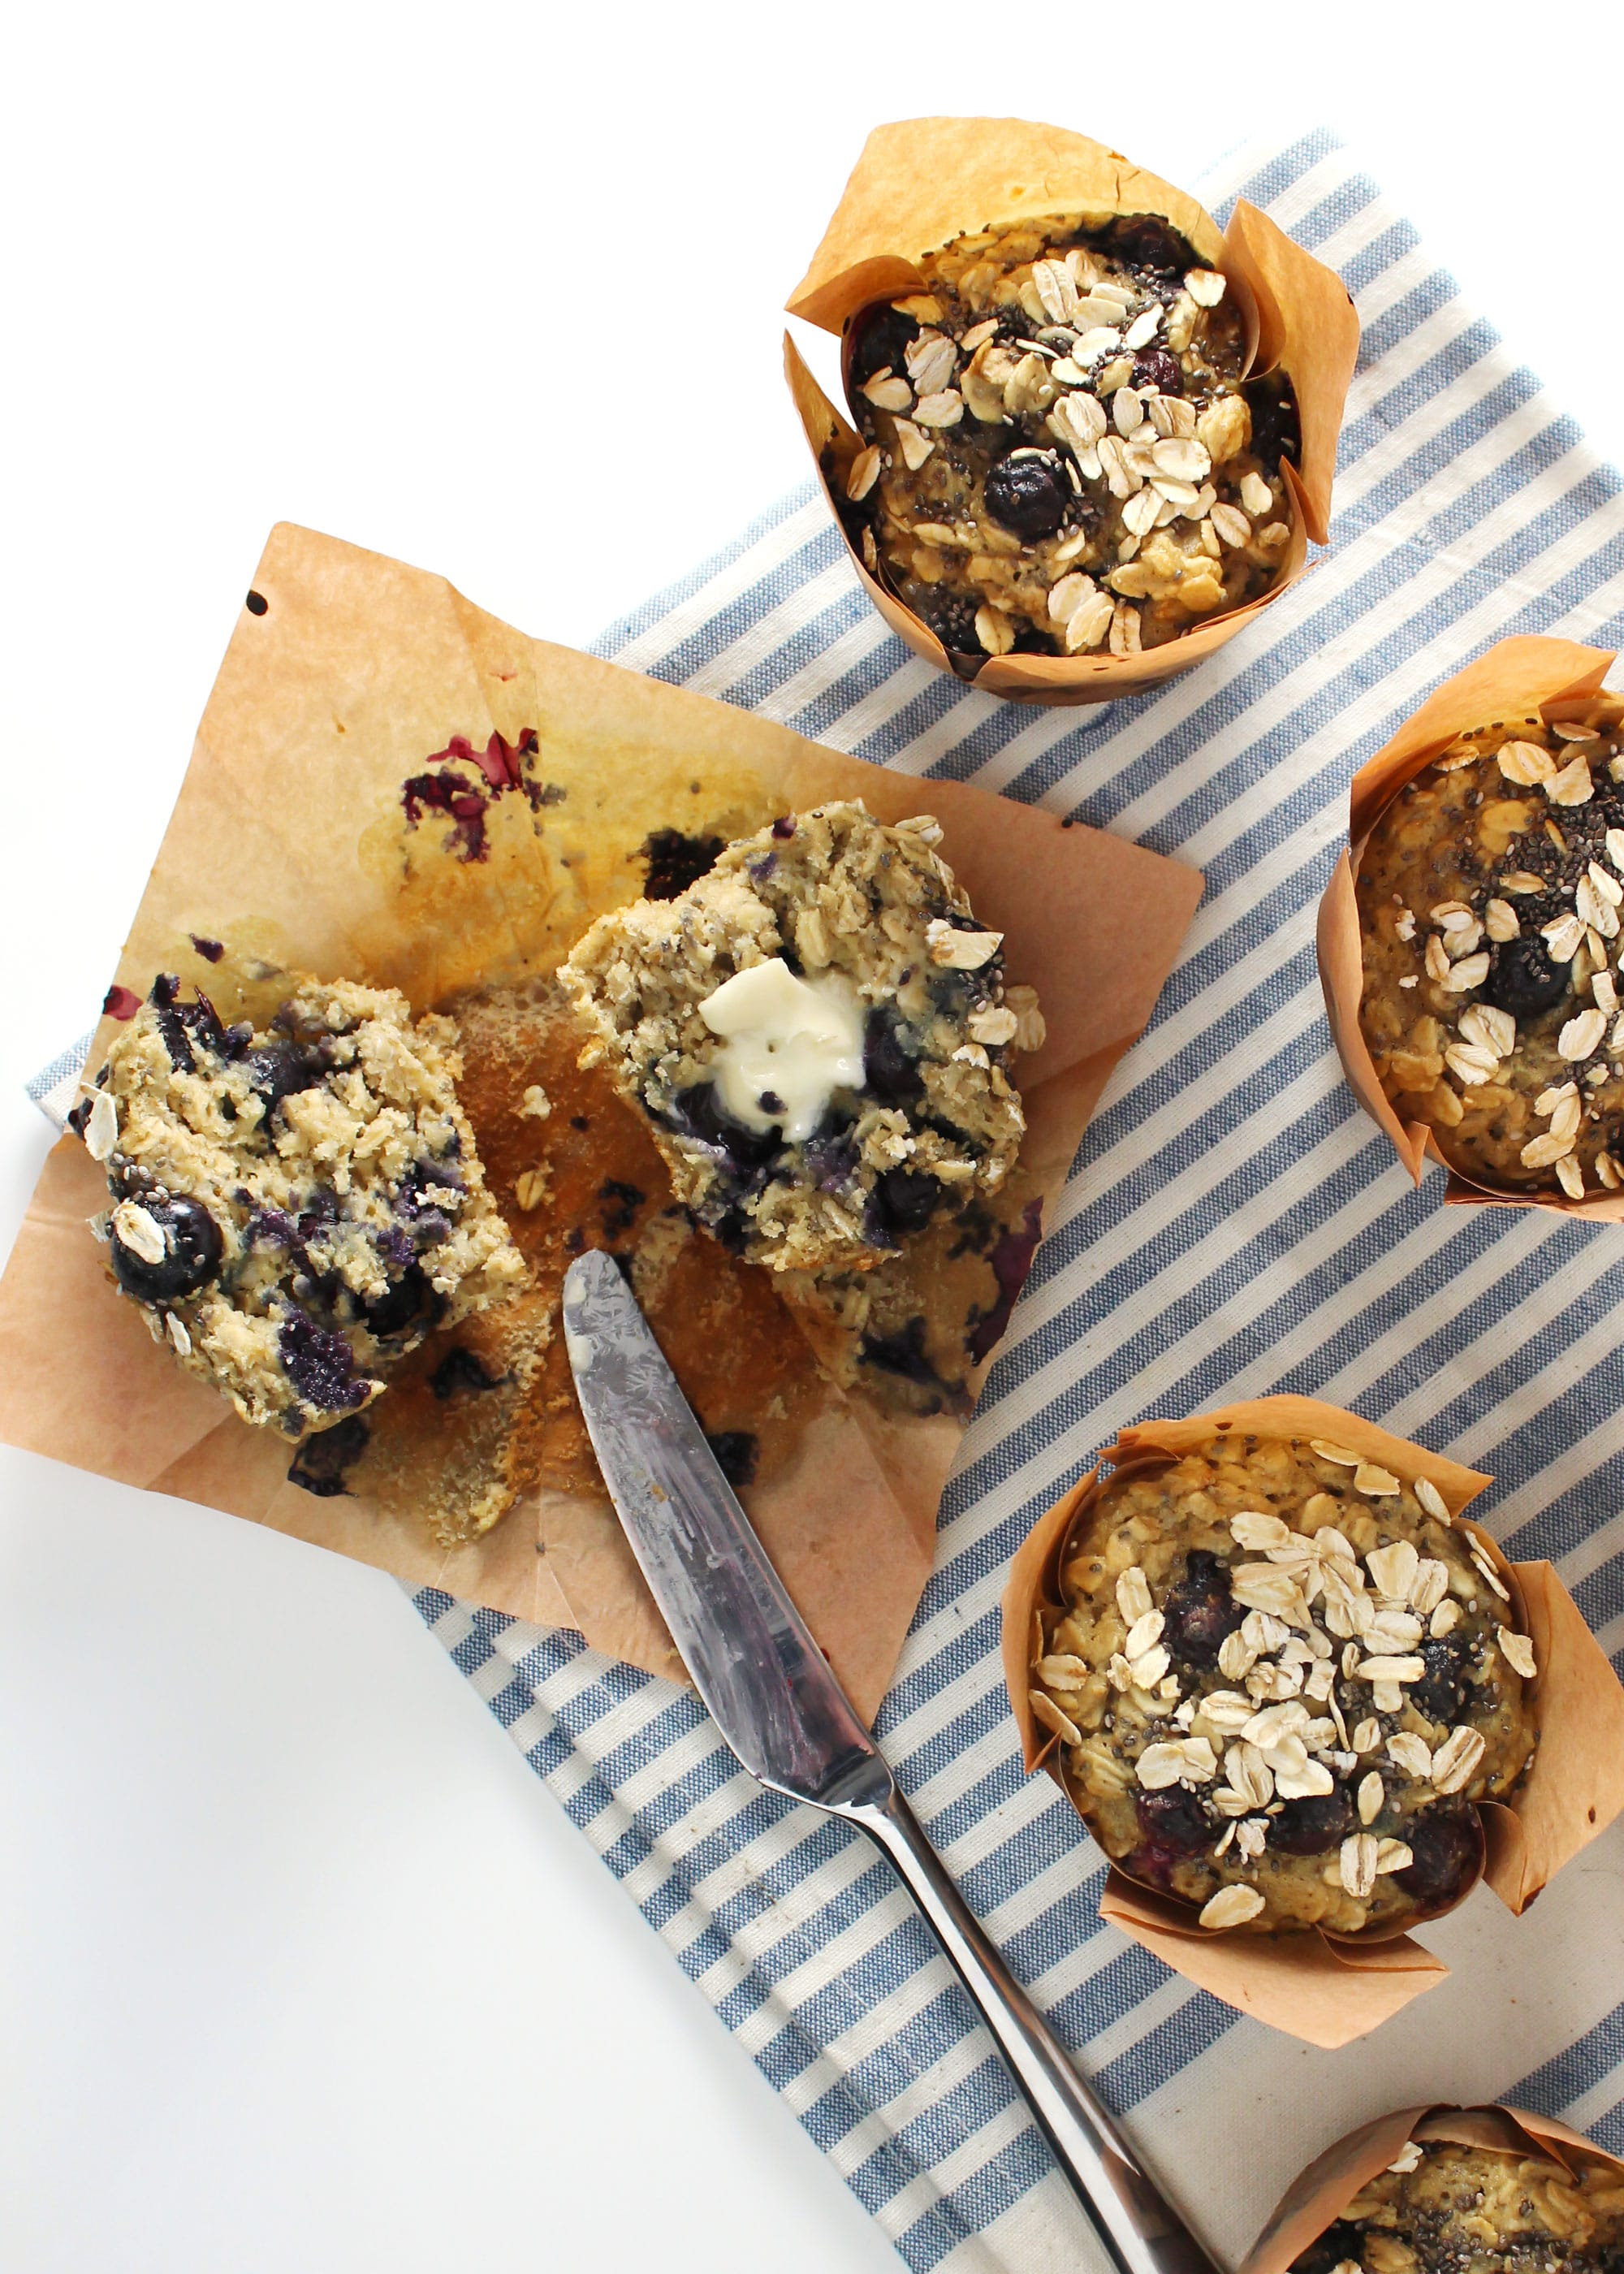 blueberry chia oat muffin sliced in half with butter and silver knife